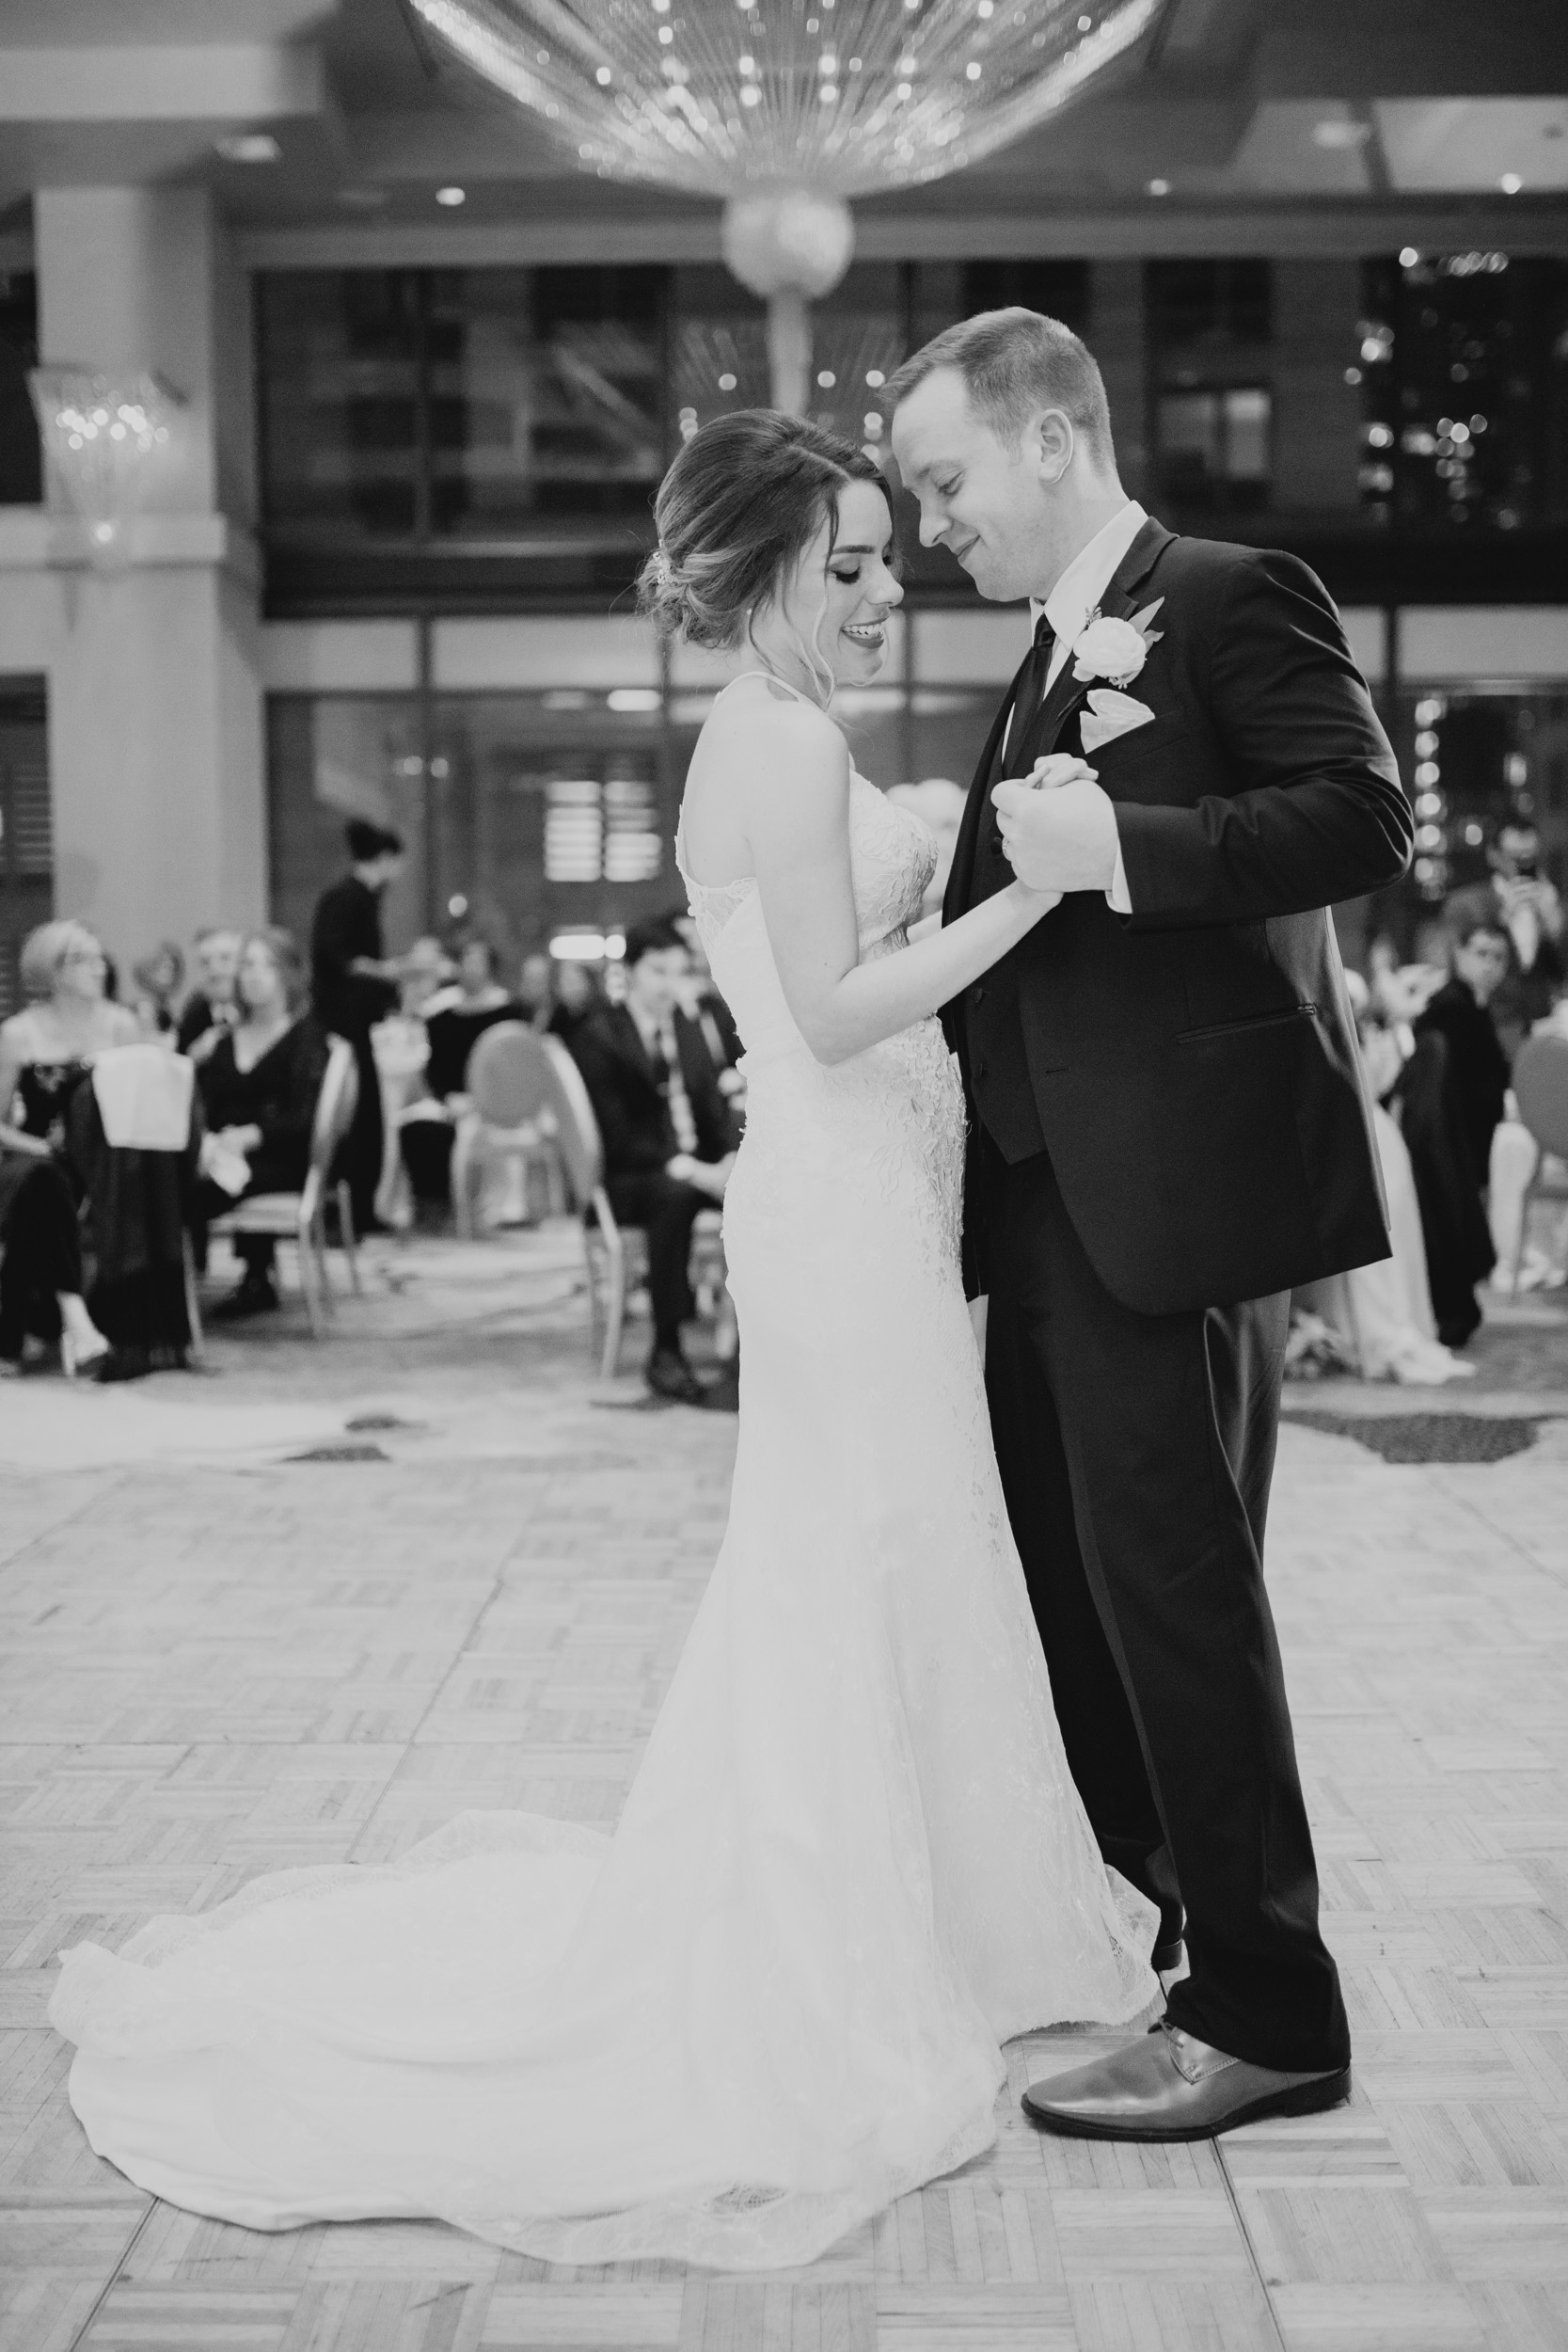 Downtown Chicago Wedding_Polly C Photography 1706211011.jpg